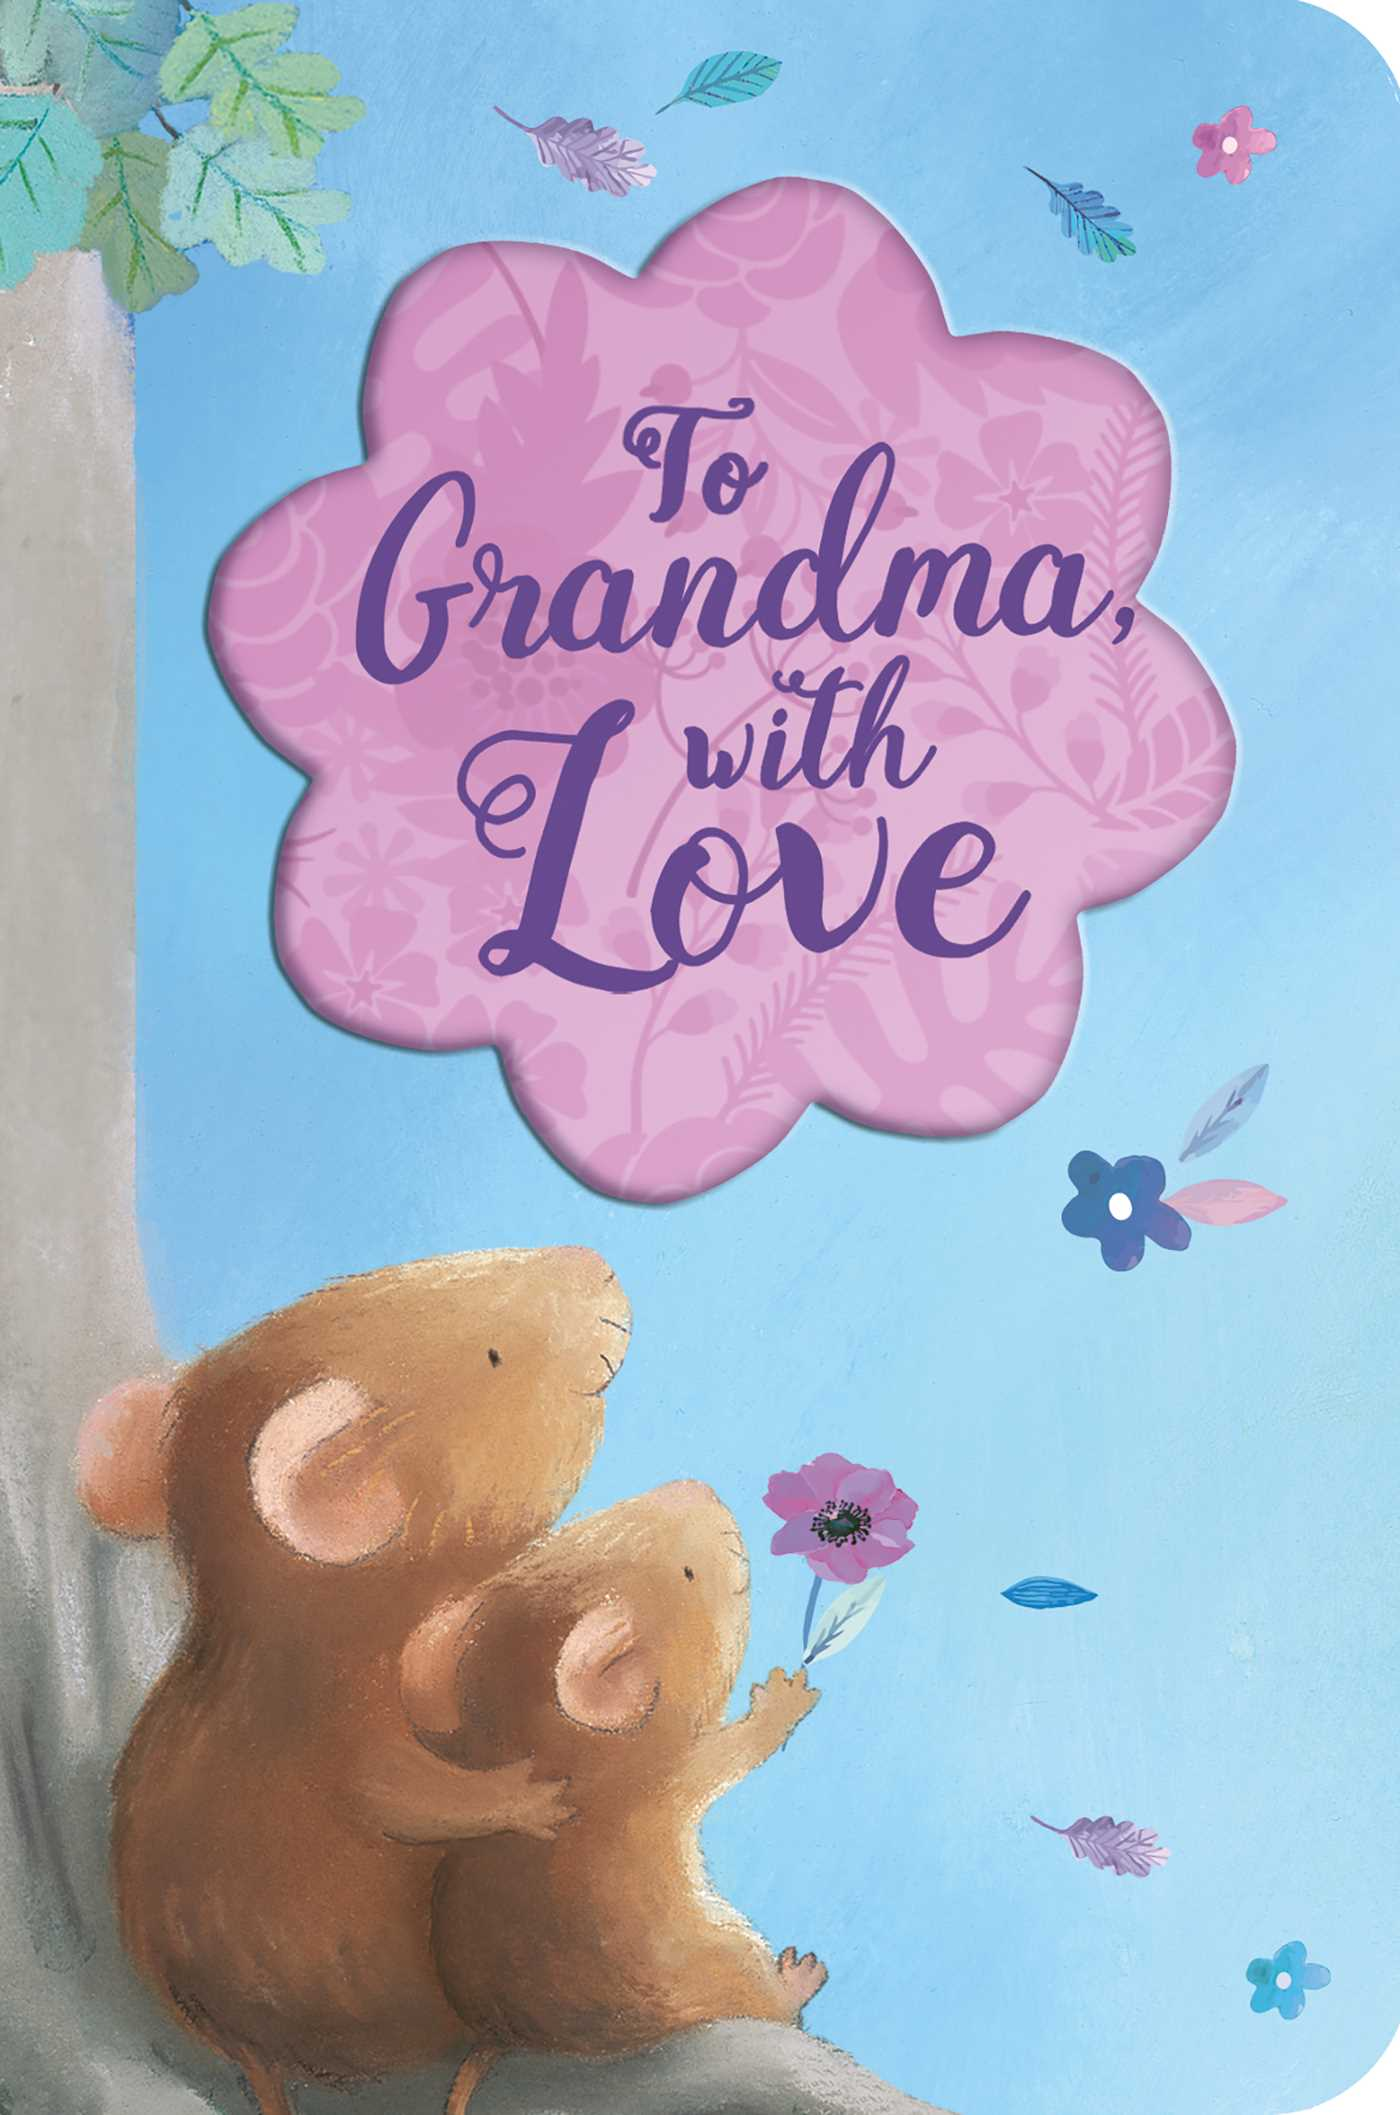 To grandma with love 9781684122707 hr